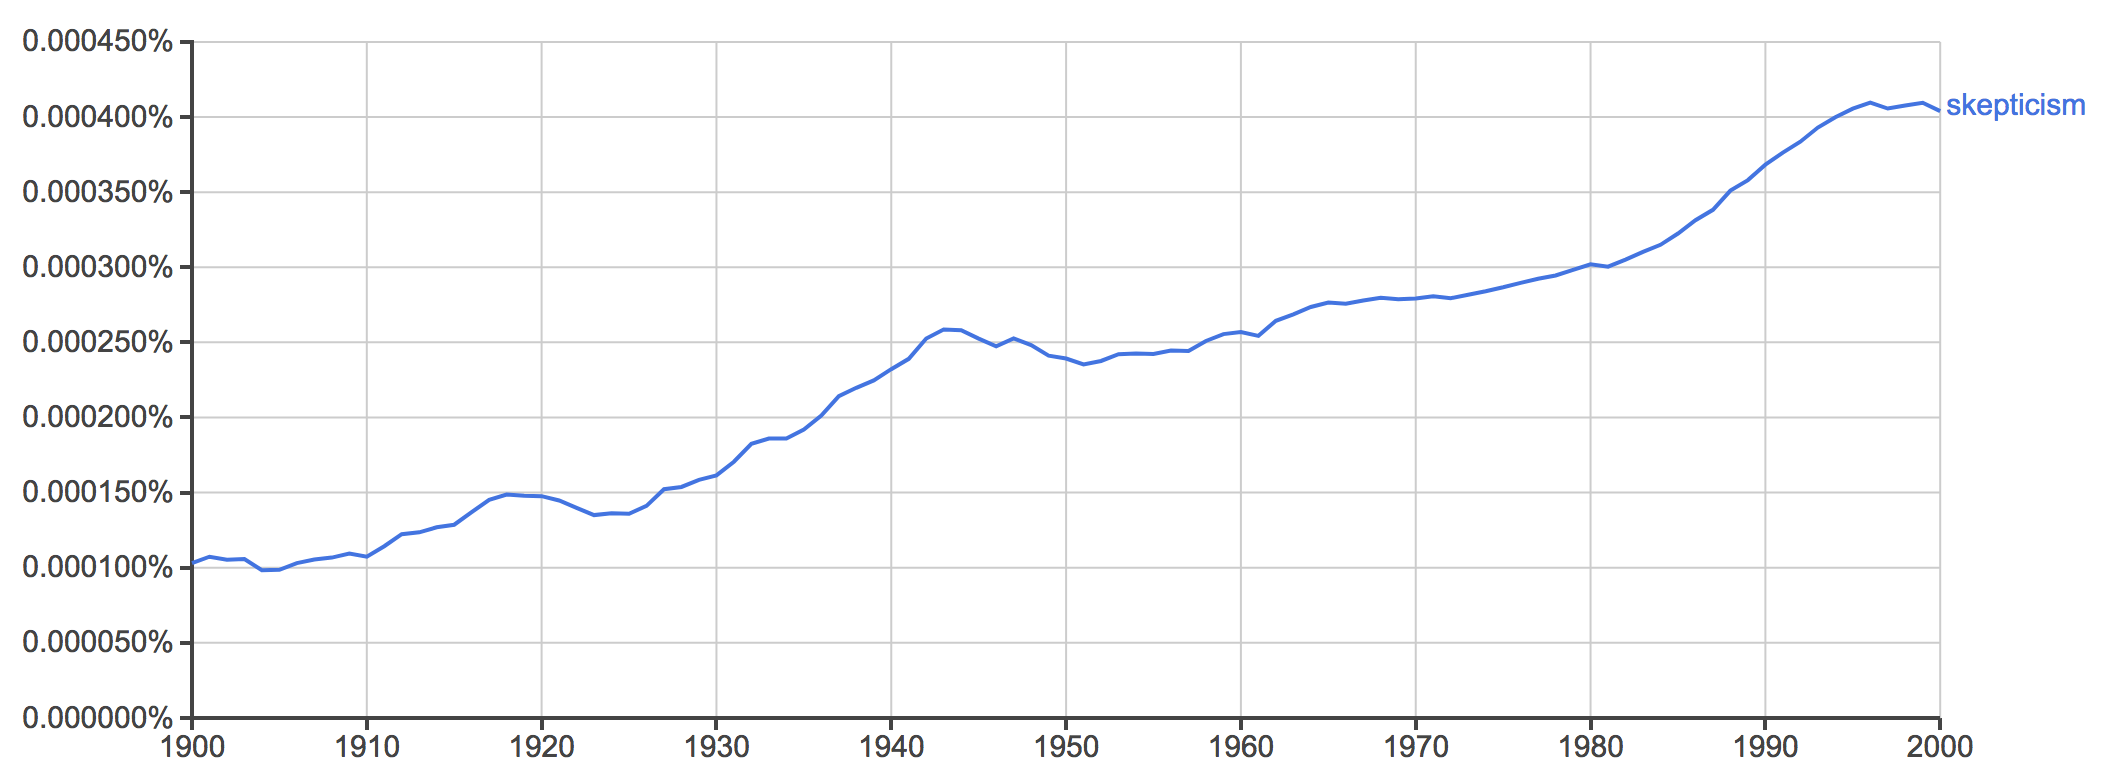 This is a graph of the word skepticism. It shows that the word was used more and more throughout the 20th century as the line goes continuously up.